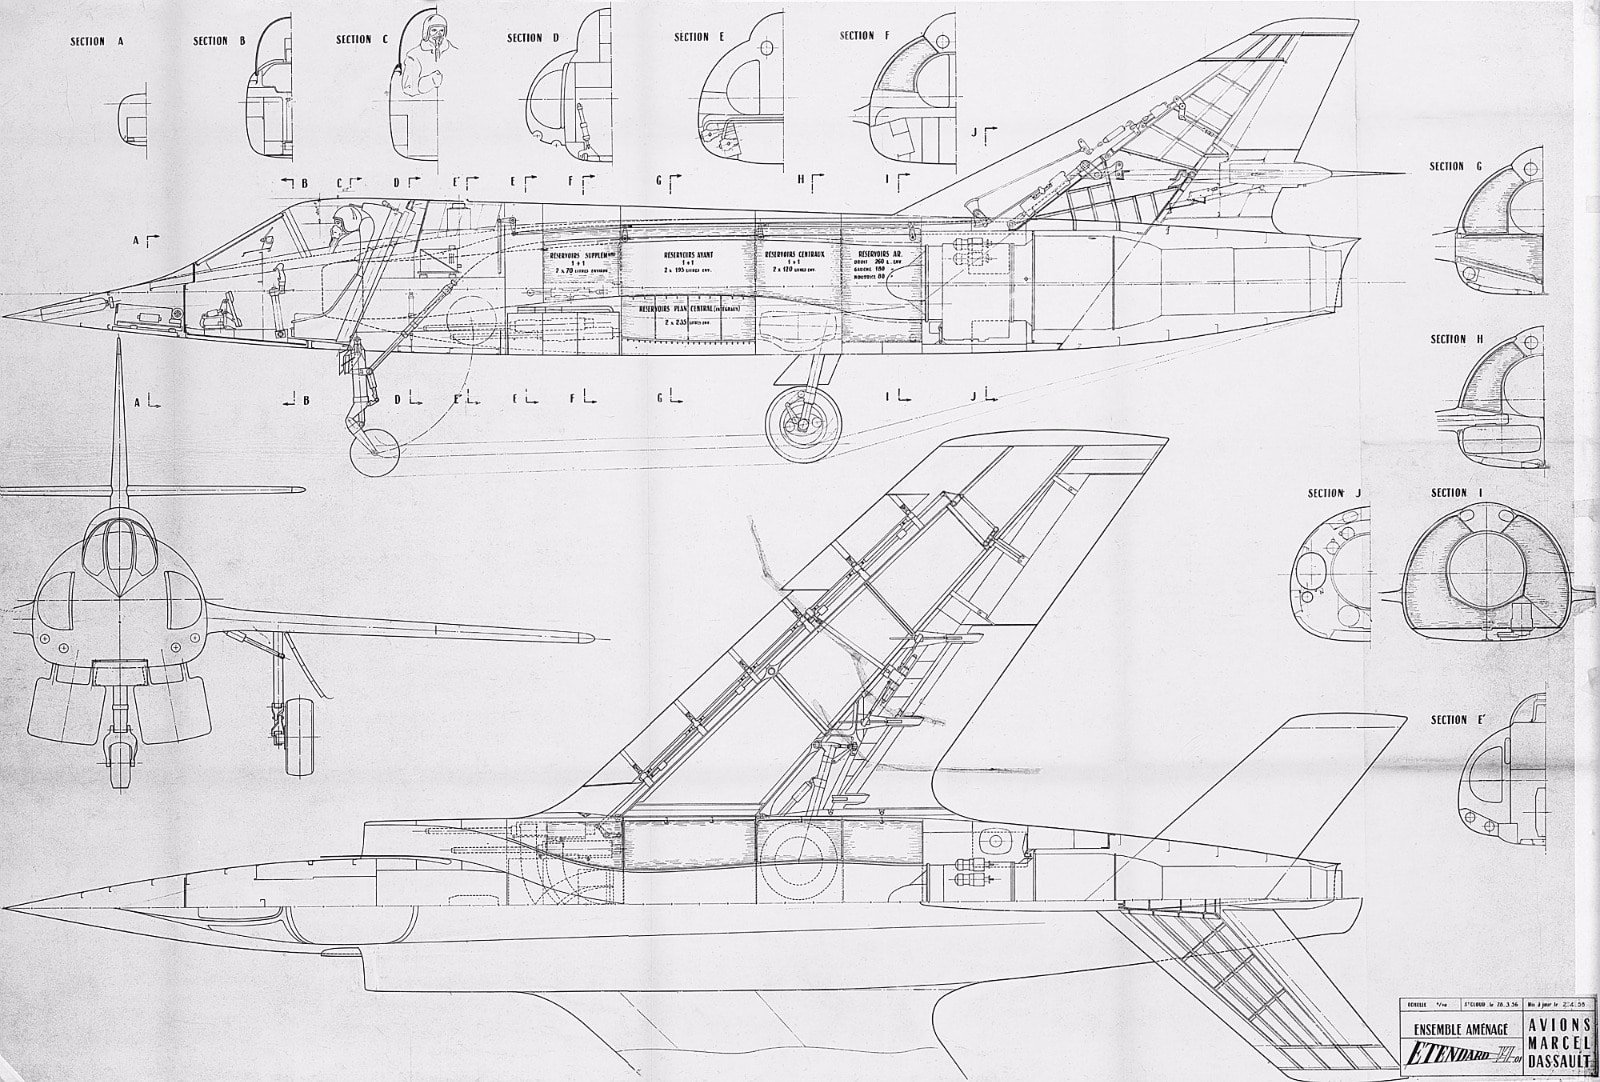 3 View Drawings Of A Selection Of Dassault Aviation Aircraft